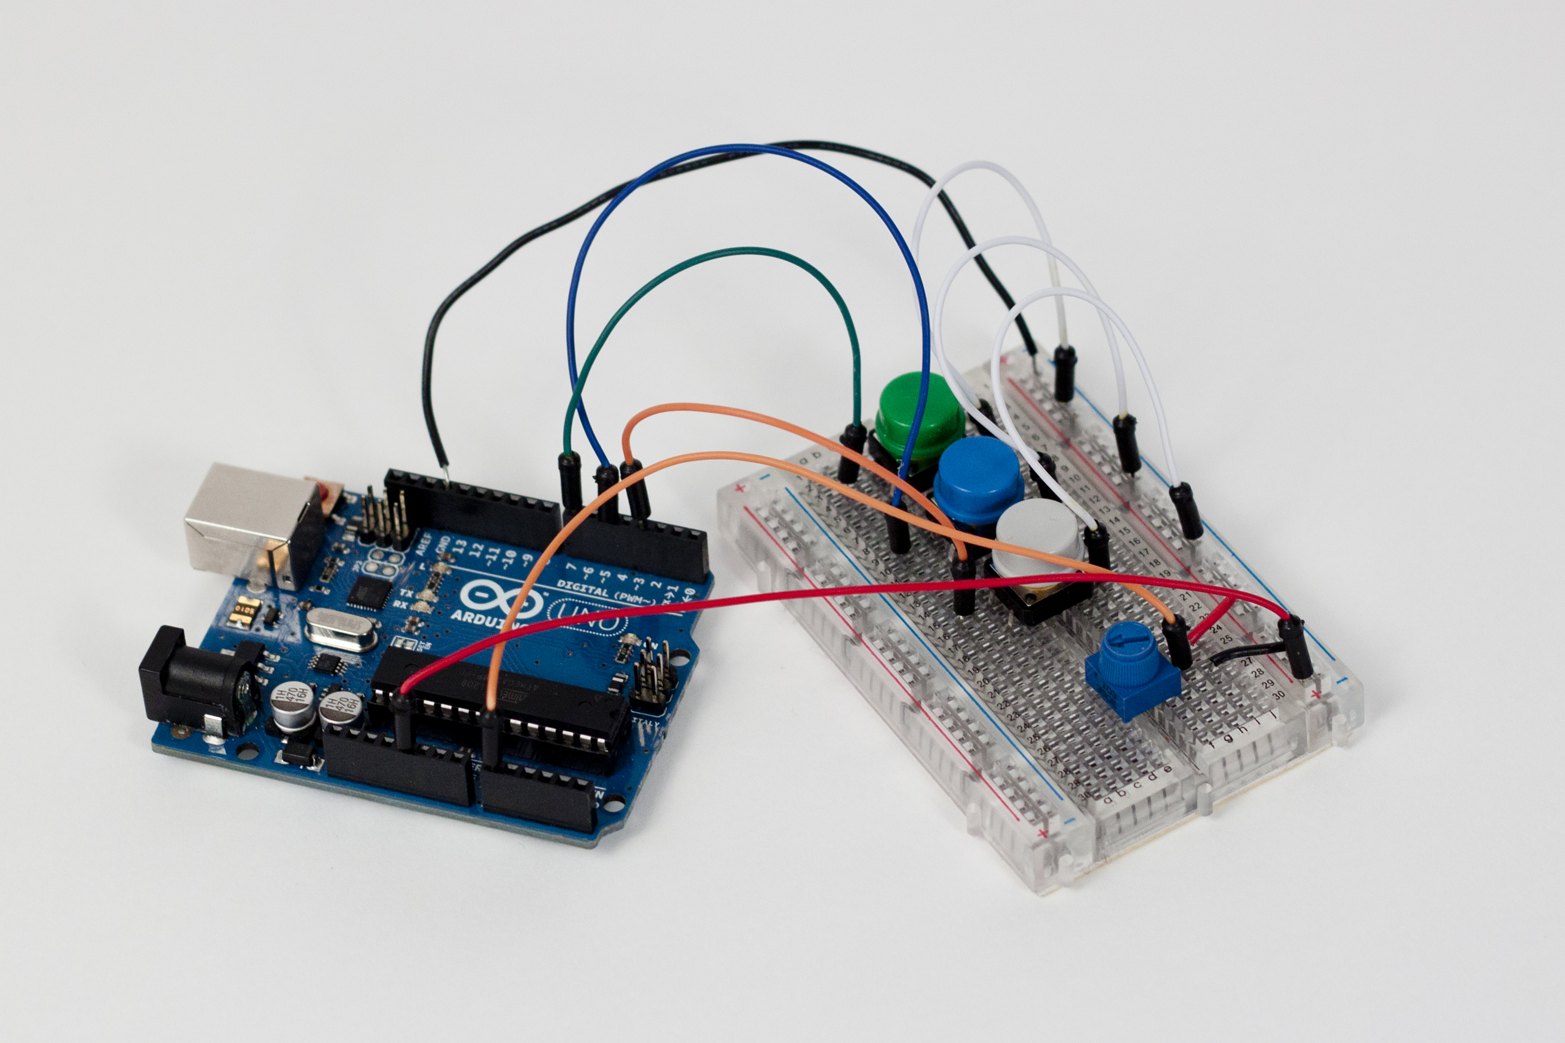 An Arduino Uno with a breadboard allows for making simple or complex circuits without soldering